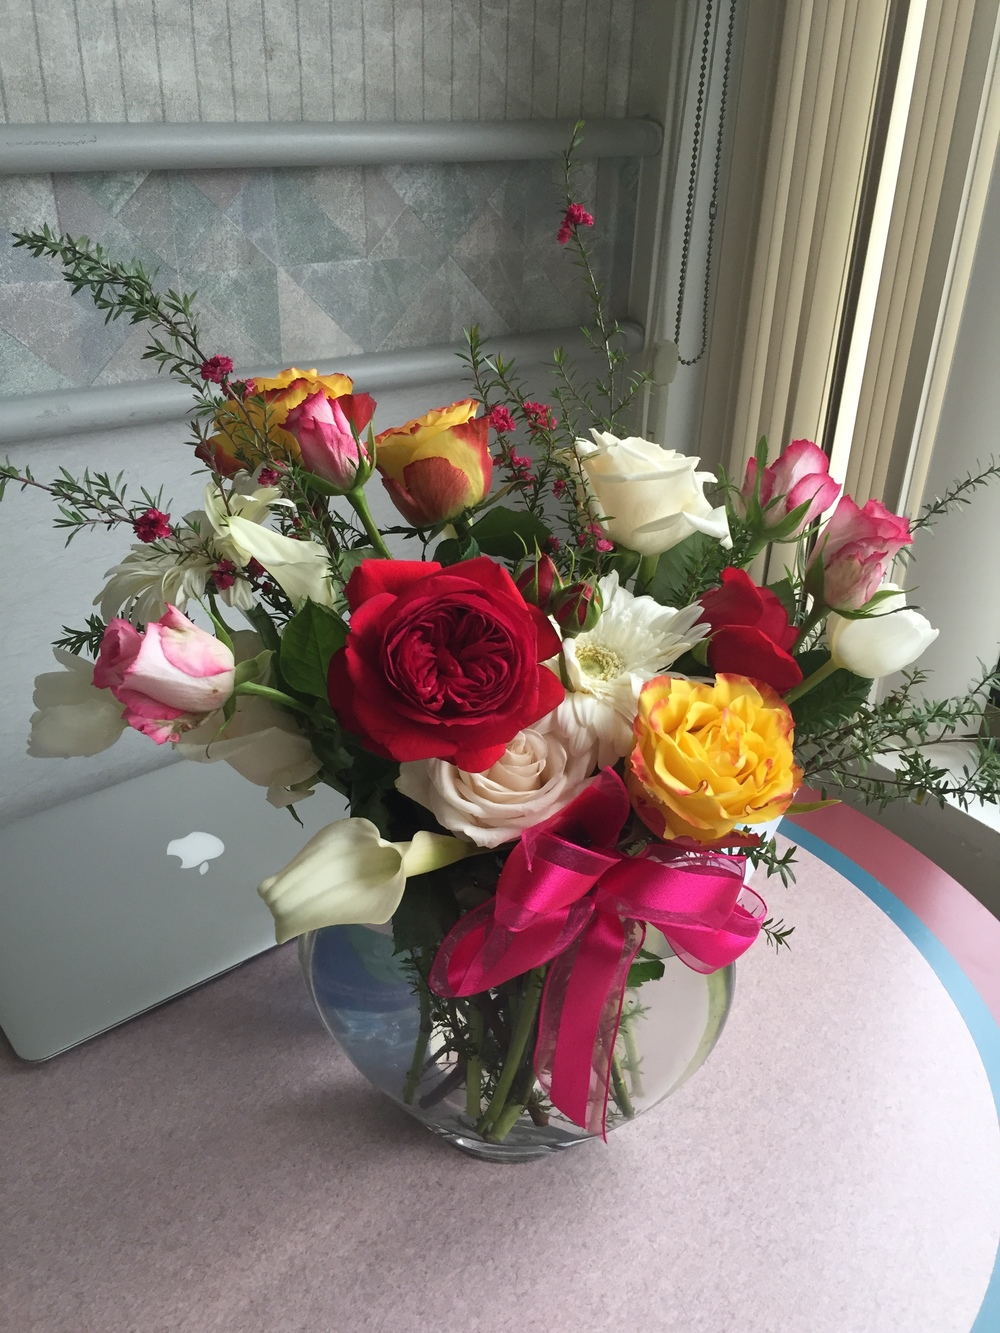 I got so many beautiful flowers while I was in the hospital! Thank you!!